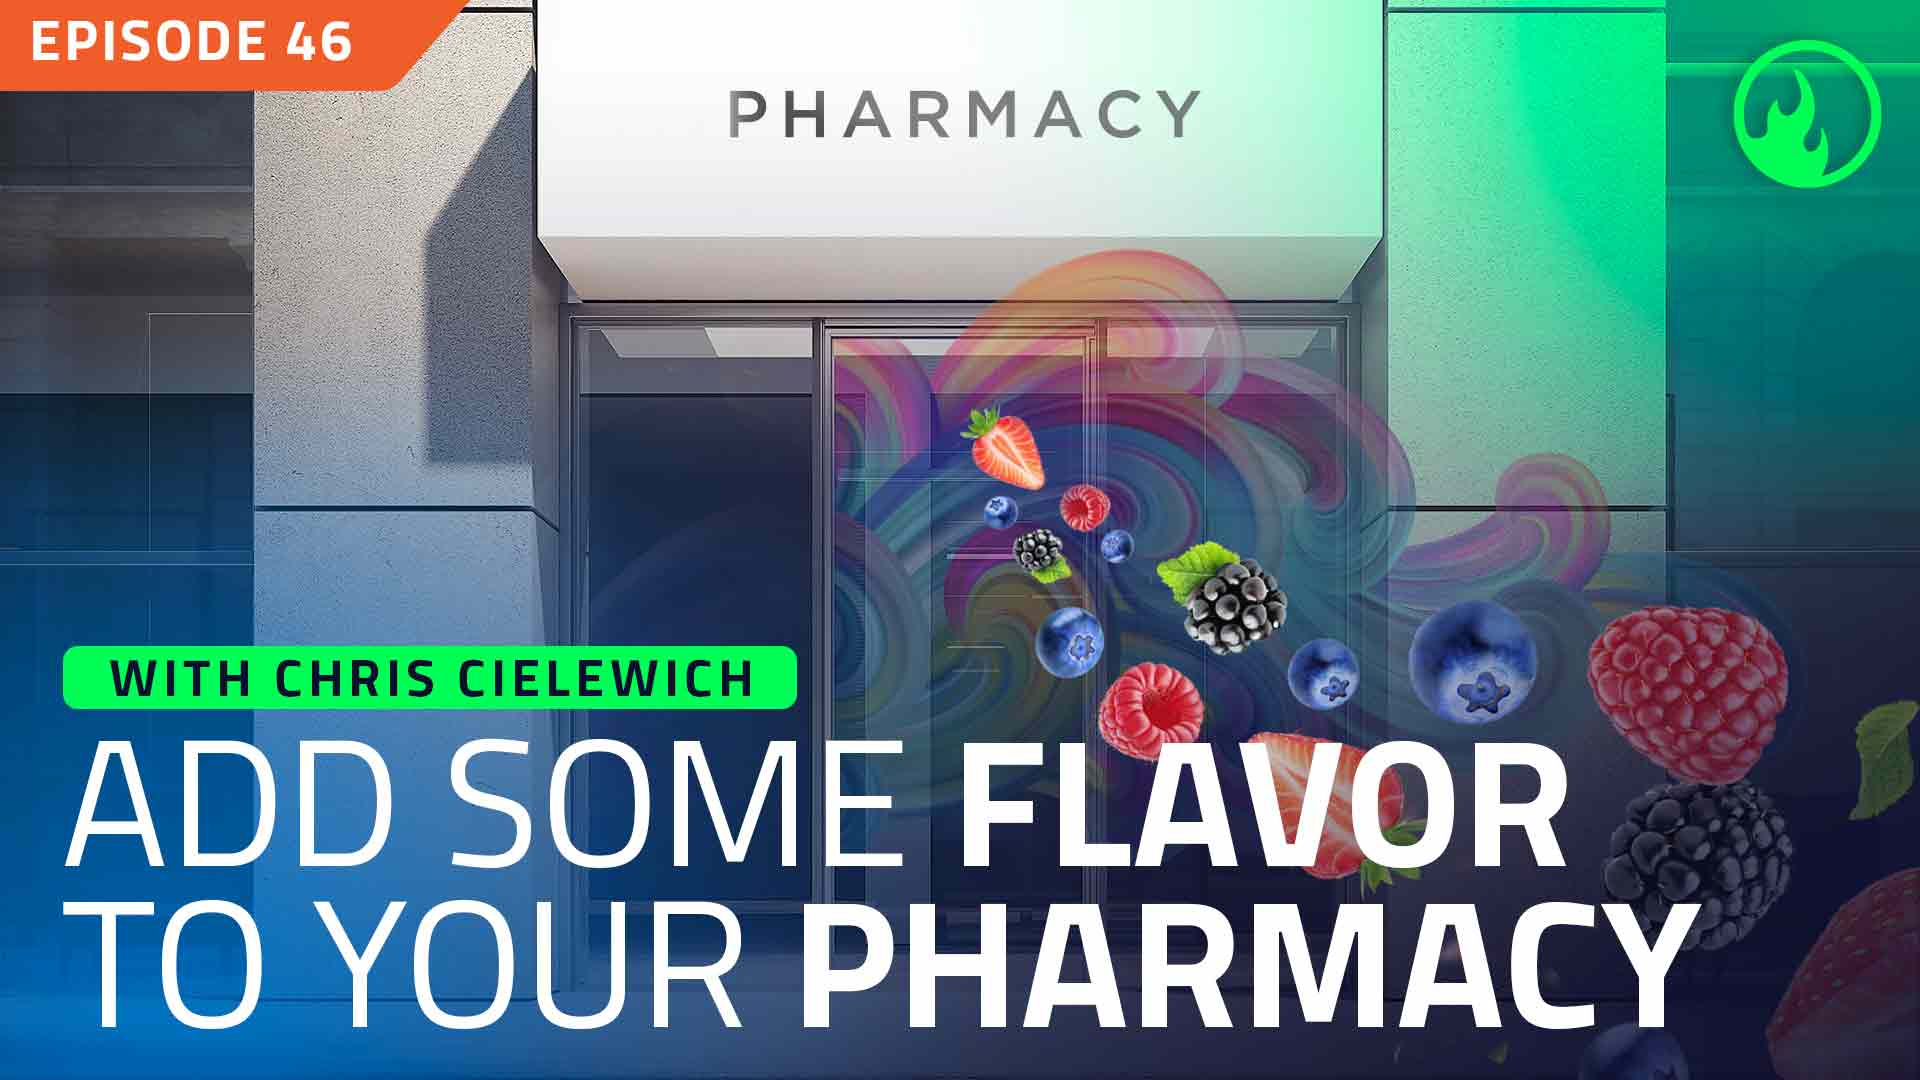 Pharmacy front with fruits and swirls